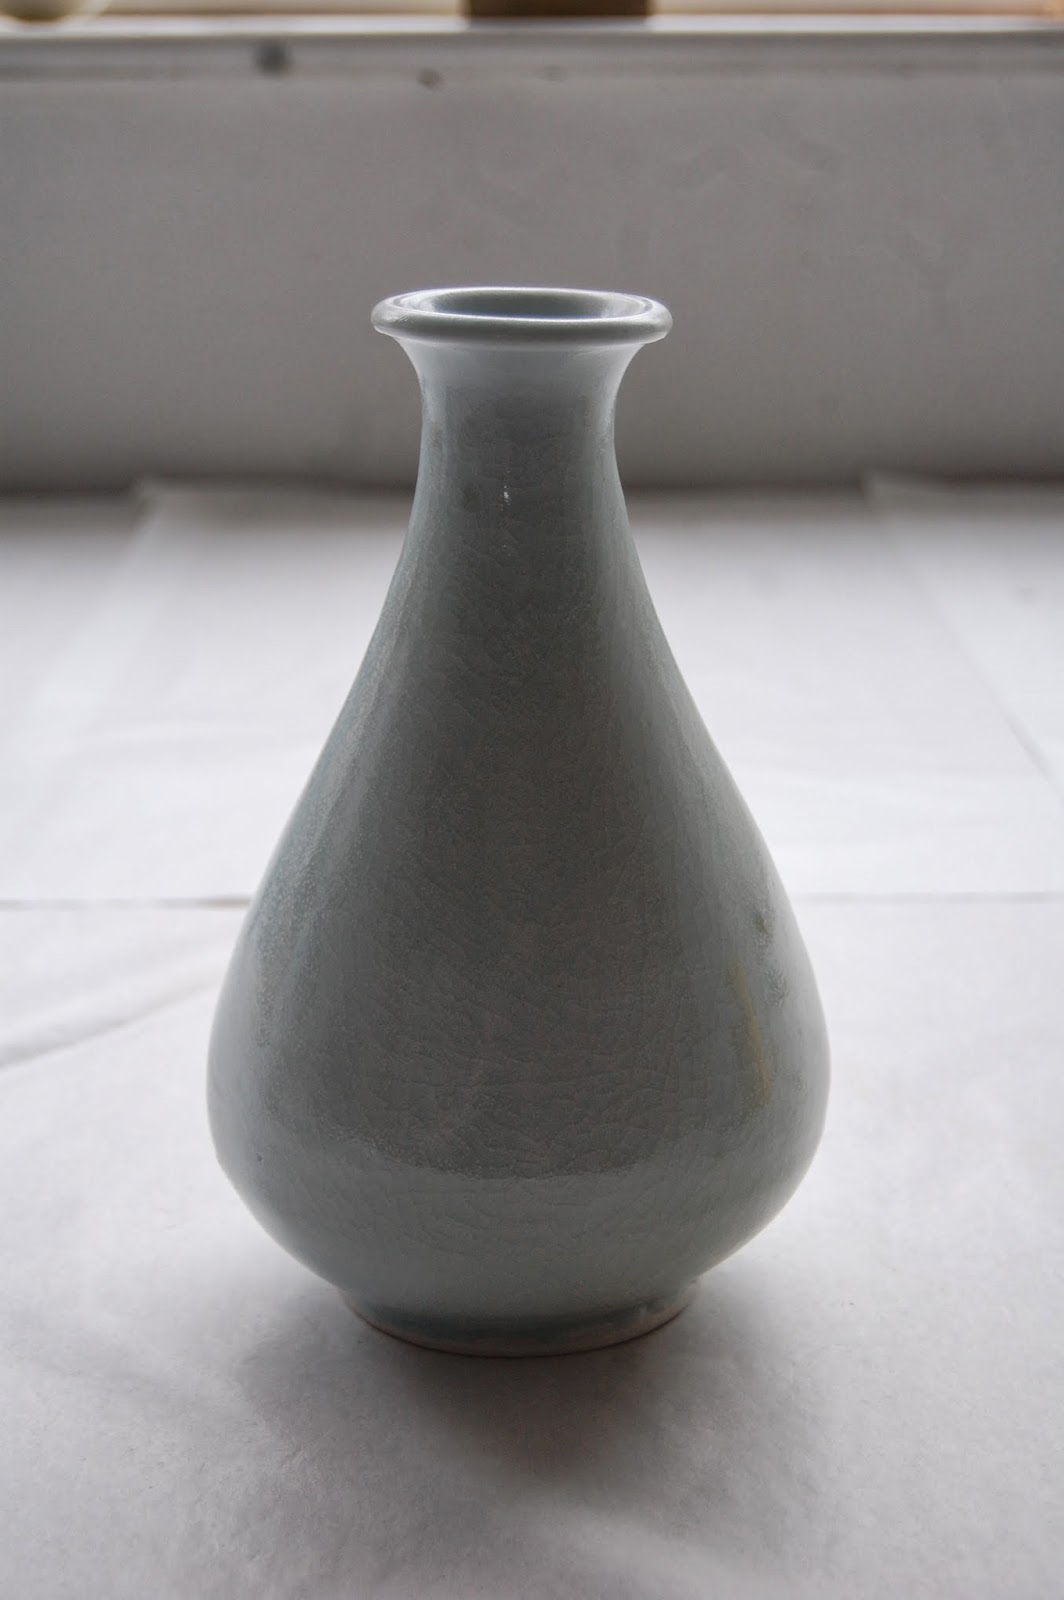 Michel Francois Porcelain bottle vase